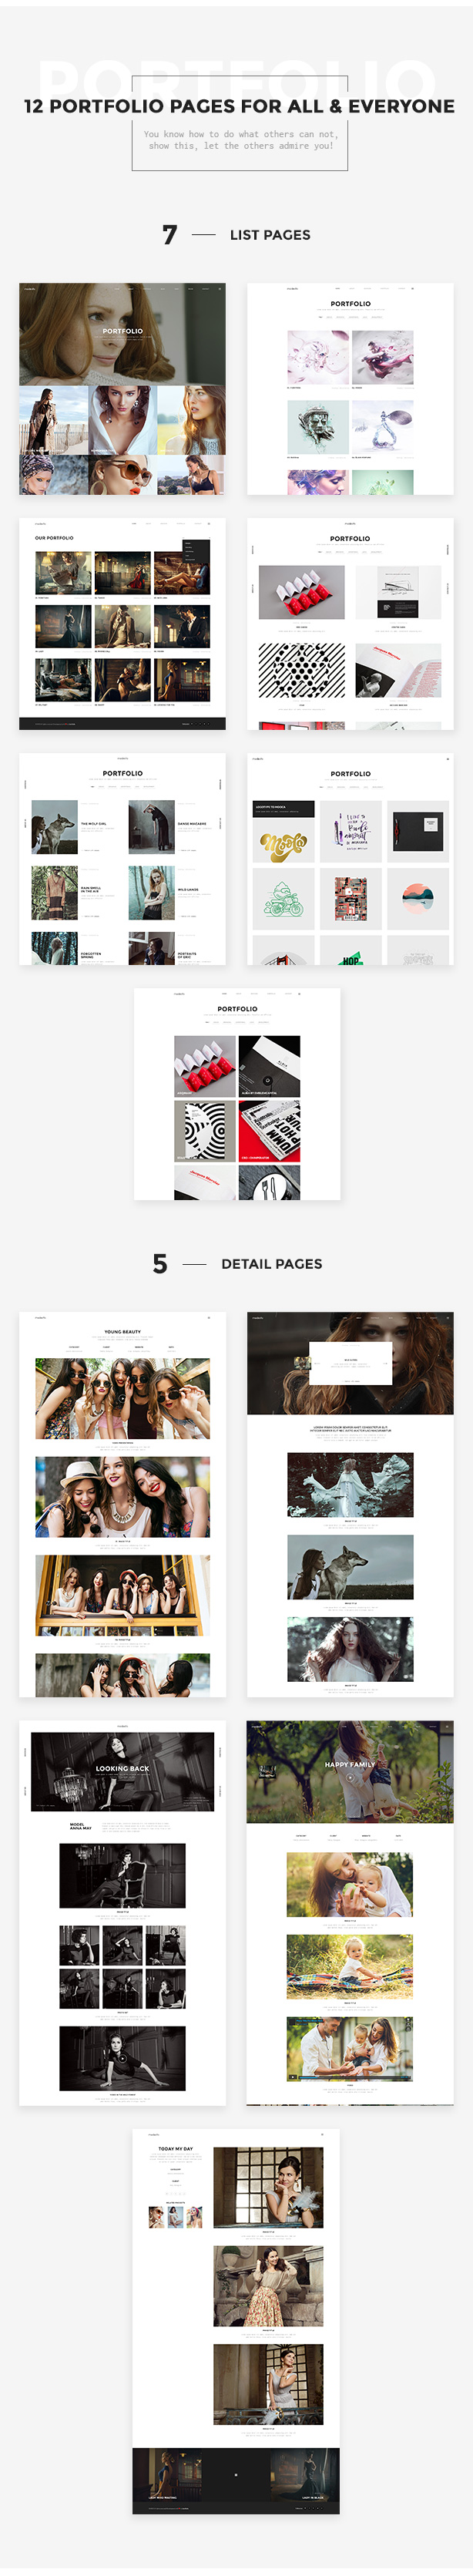 12 Portfolio Pages for all & everyone